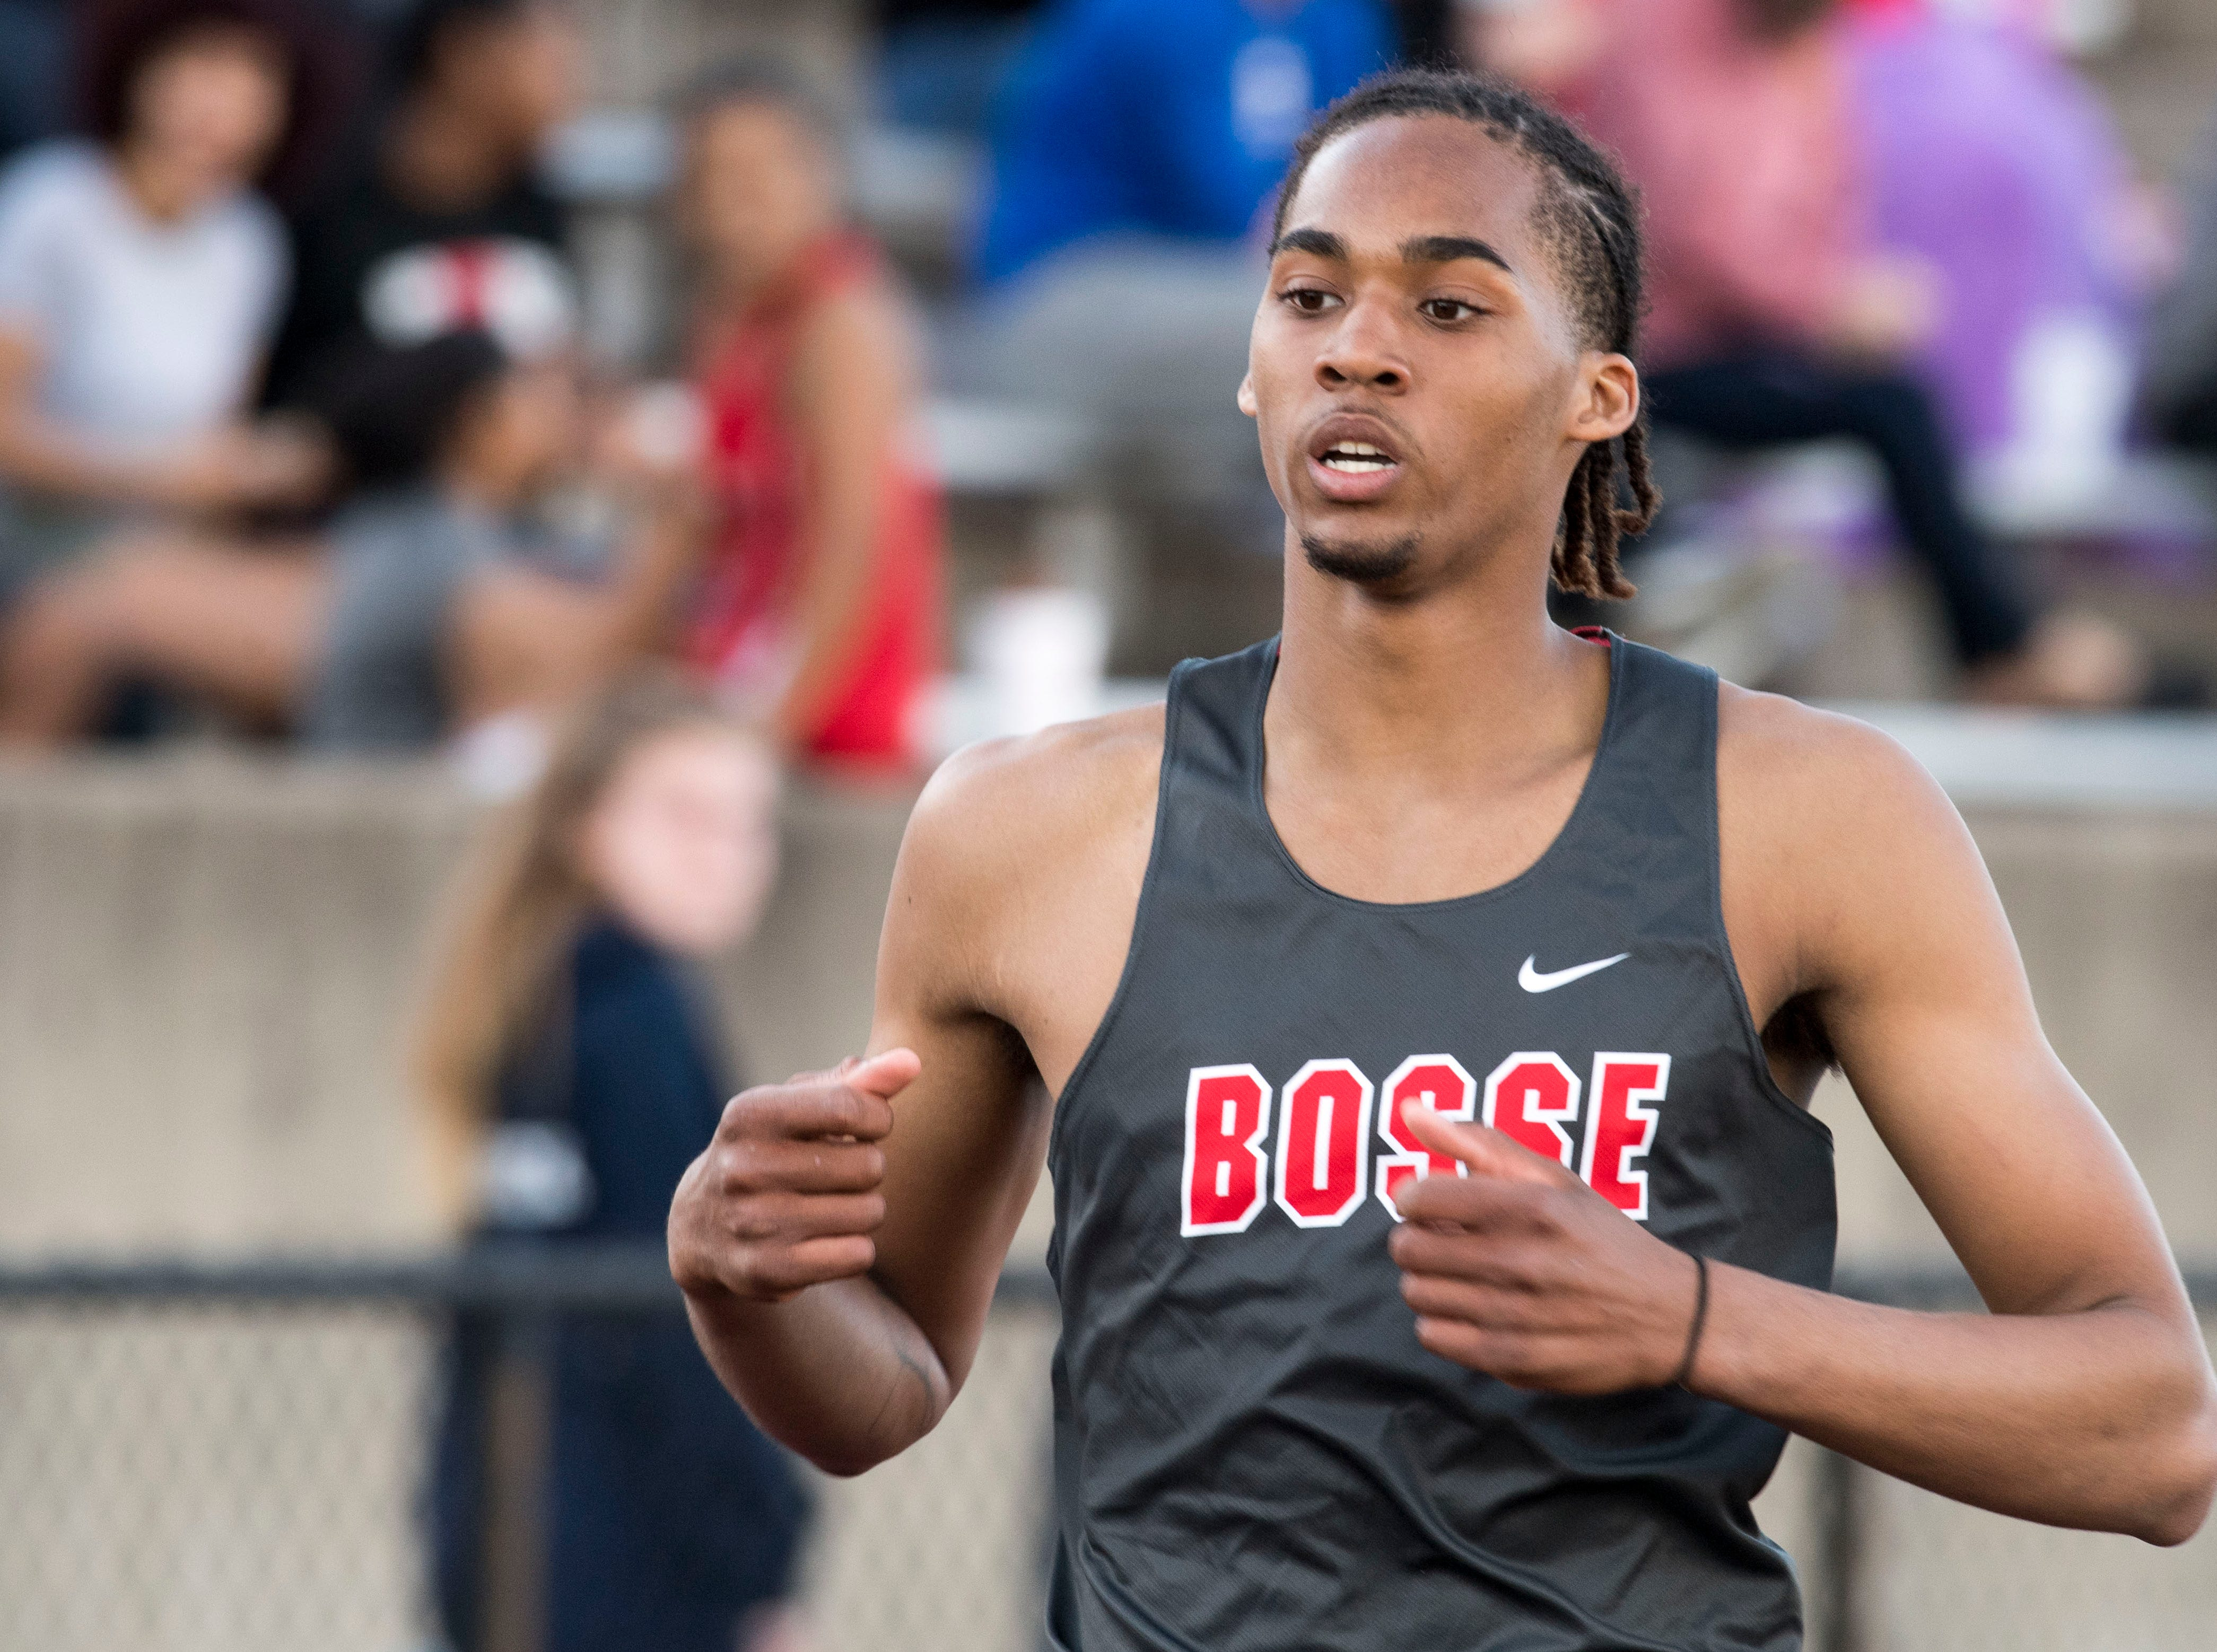 Bosse's George Madison crosses the finish line for the 400m dash event during the 2019 City Track and Field meet at Central High School Friday, April 12, 2019.  Madison places first at 51.05 seconds.